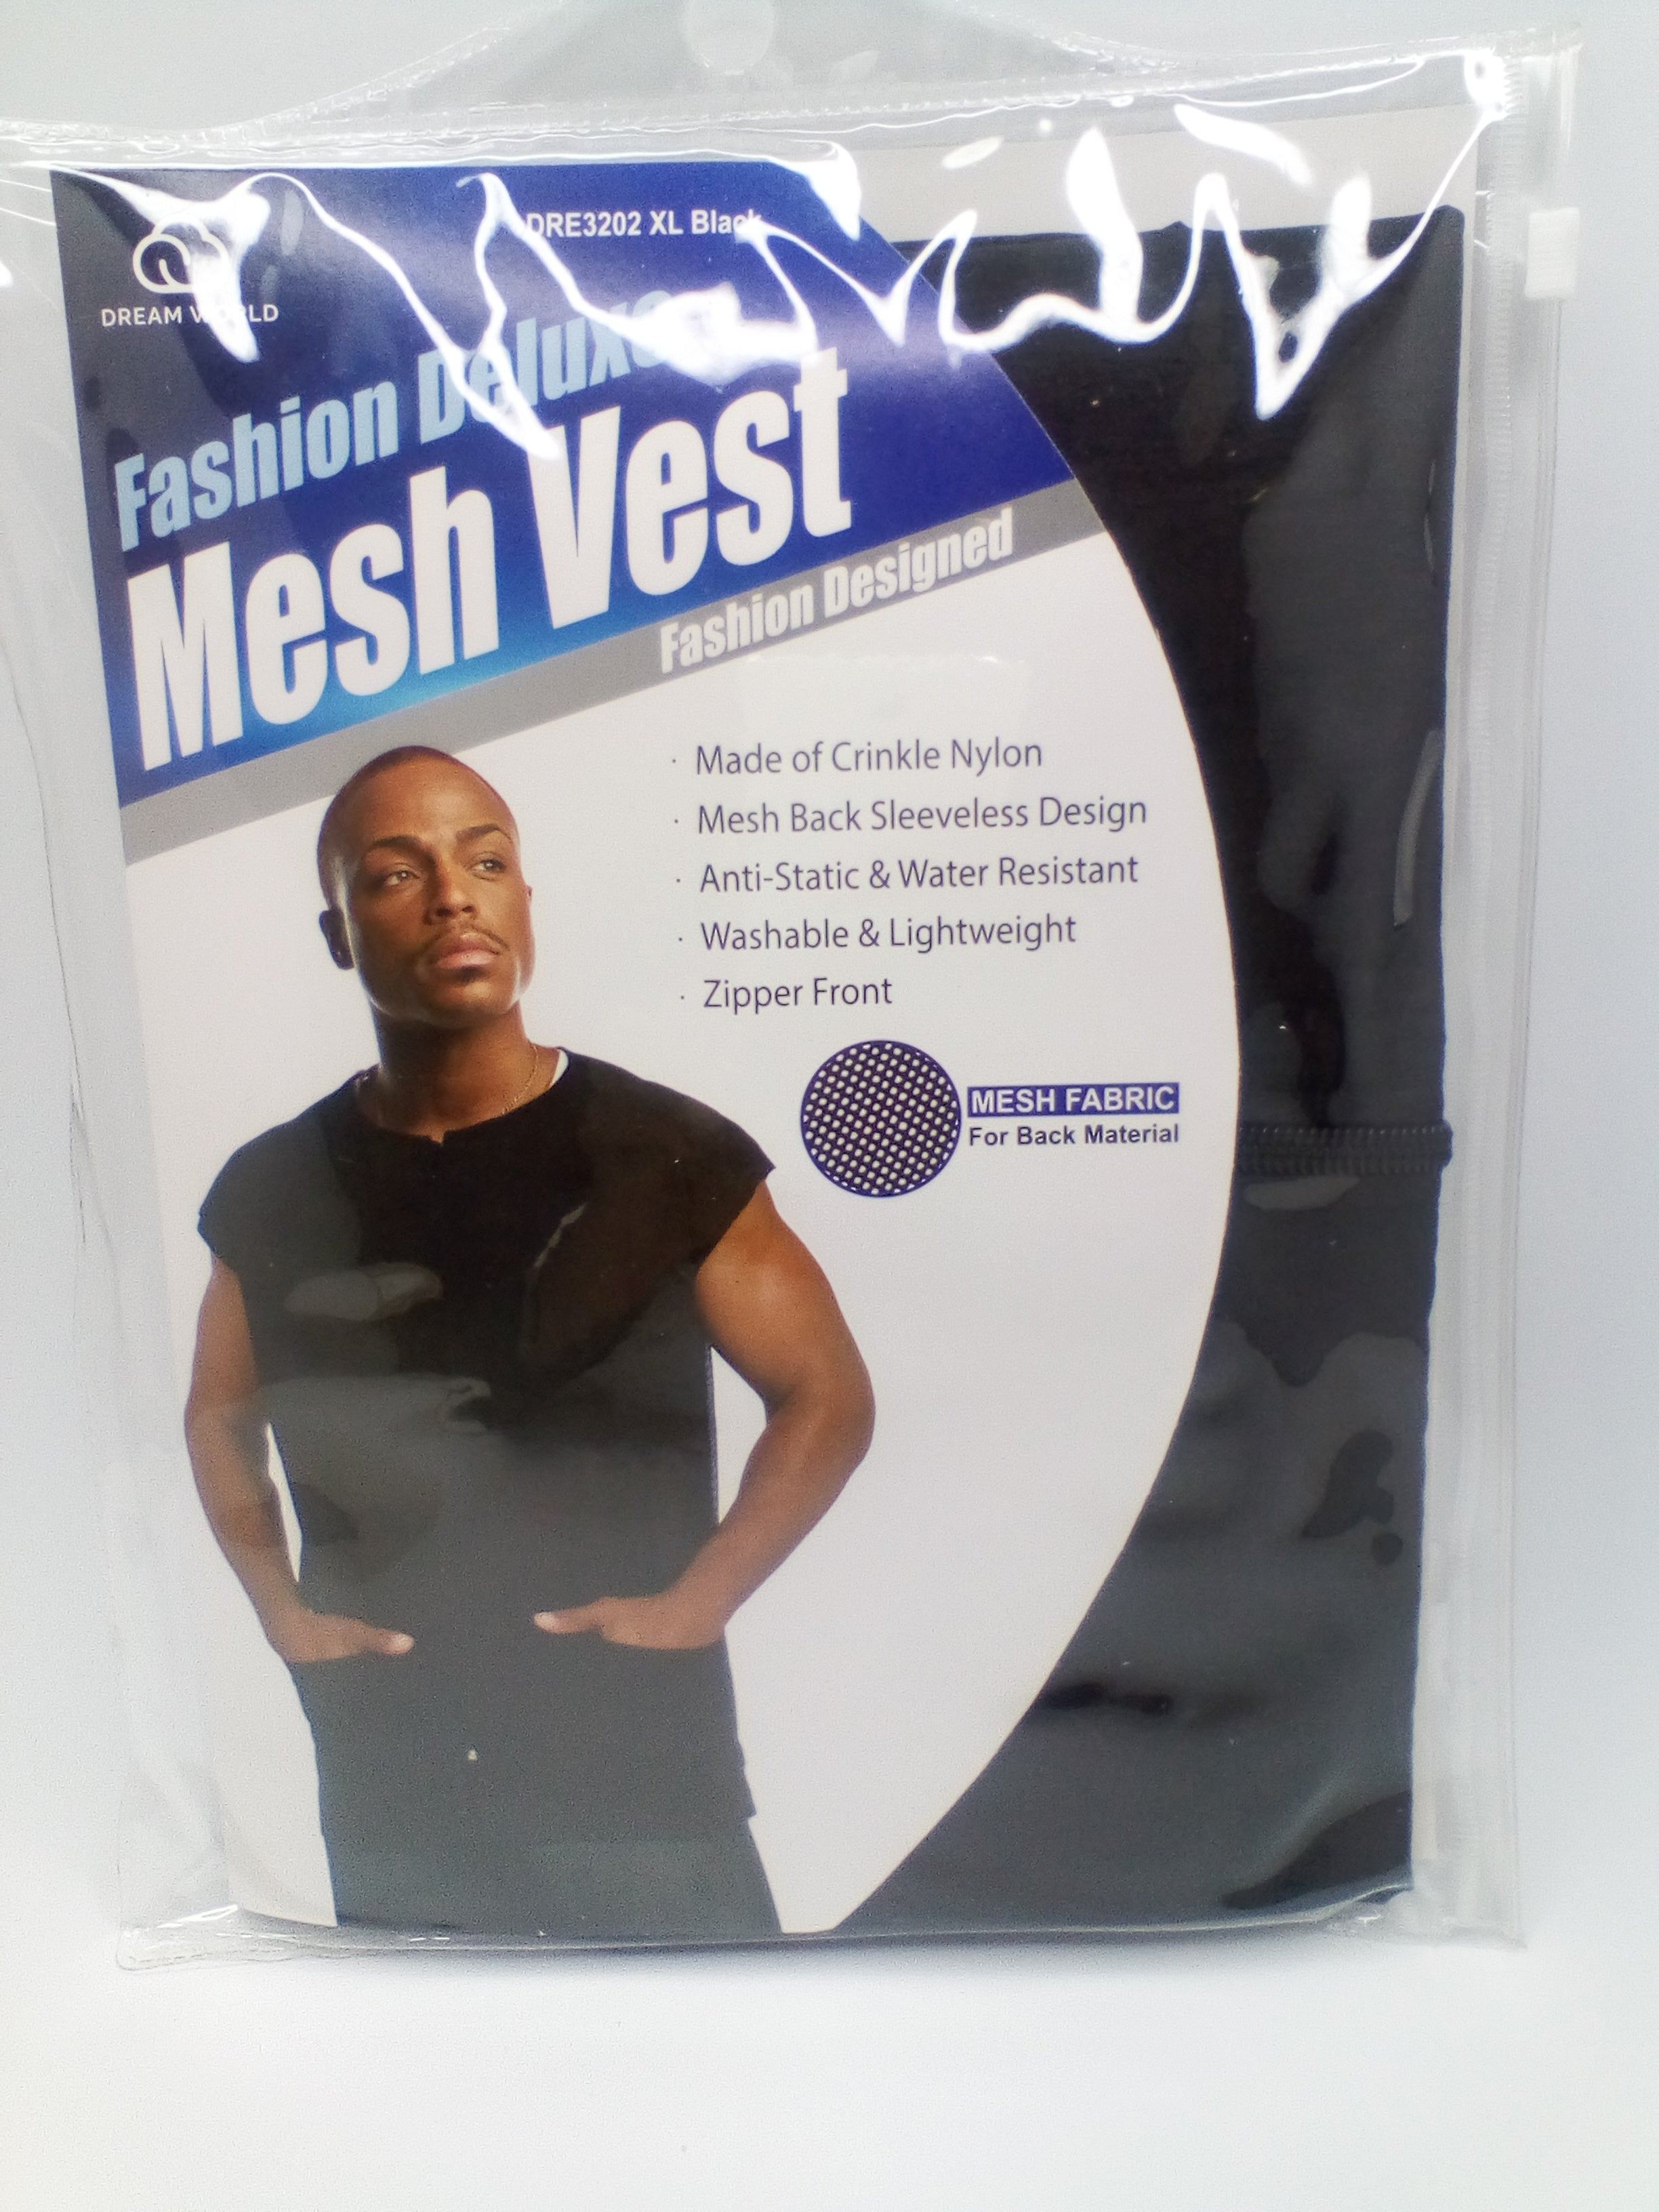 DREAM DELUXE MESH VEST DRE3202XL - Beauty Bar & Supply